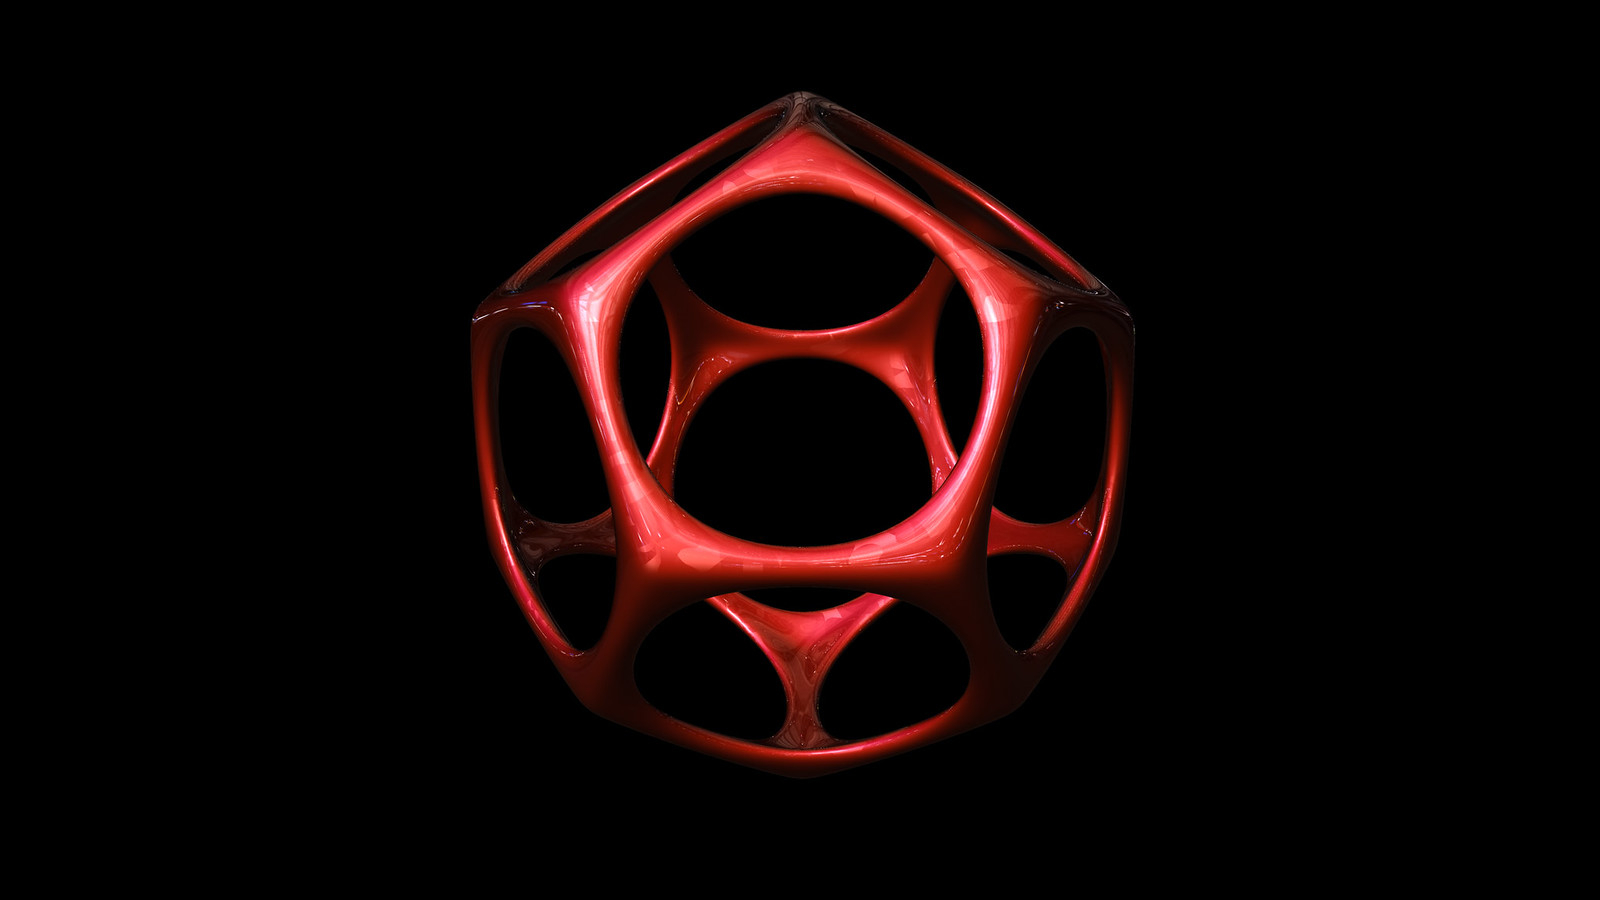 Dodecahedron soft